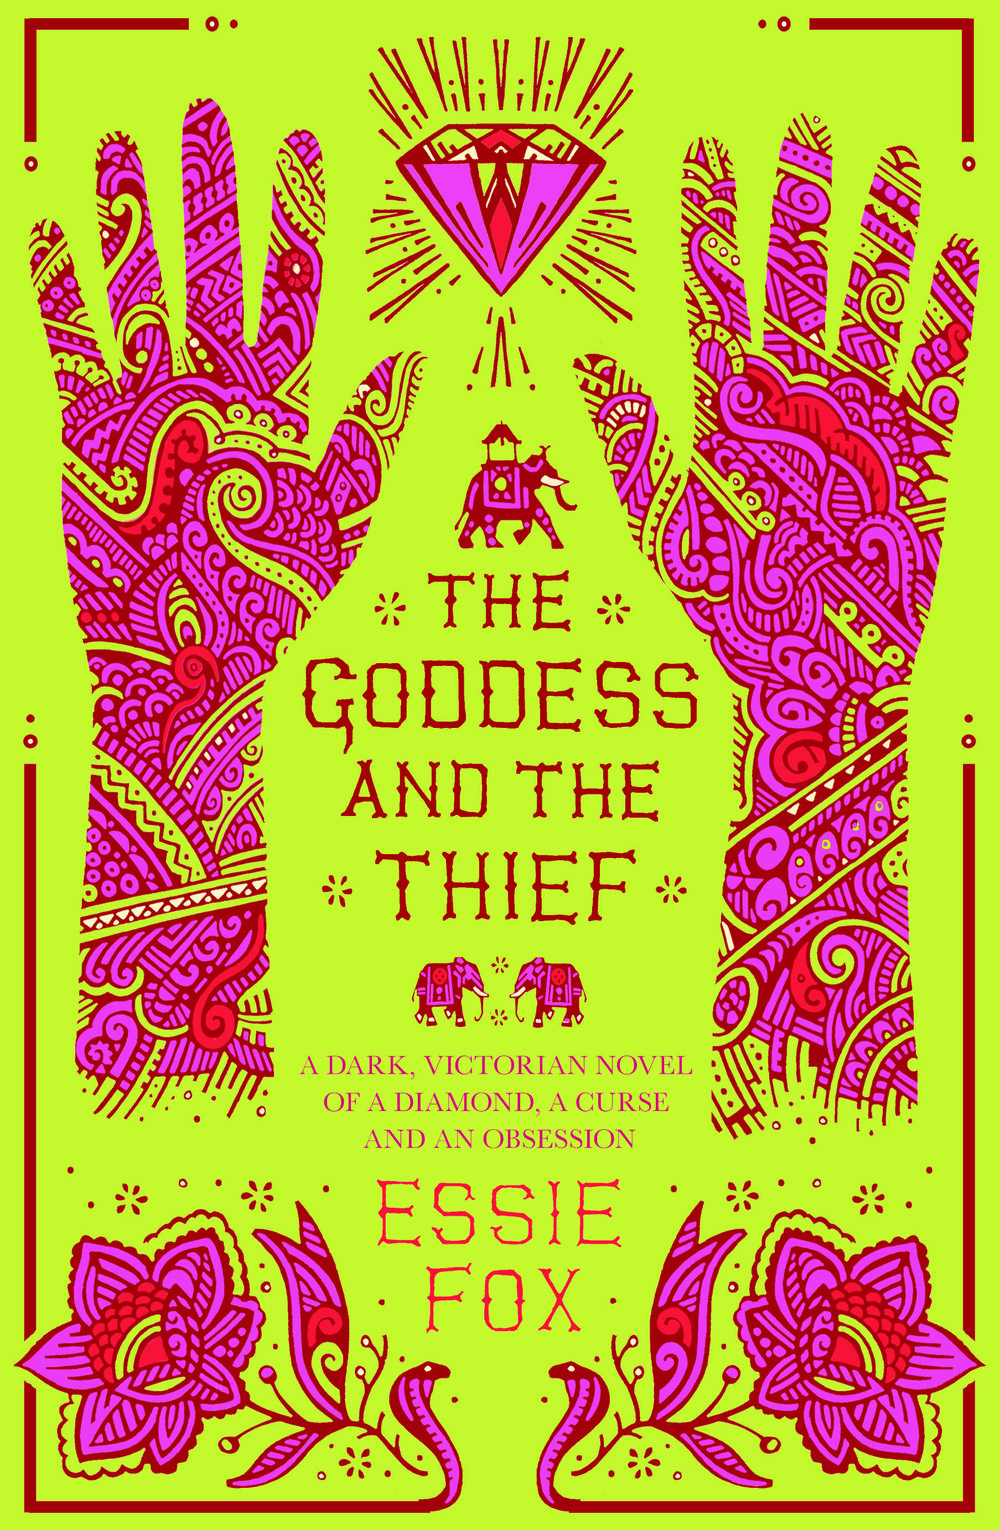 THE GODDESS AND THE THIEF Literary Fiction, 382 pages Orion - November 2014 A cursed diamond from the Raj, séances in Queen Victoria's Windsor, madness, desire & a daring plot.